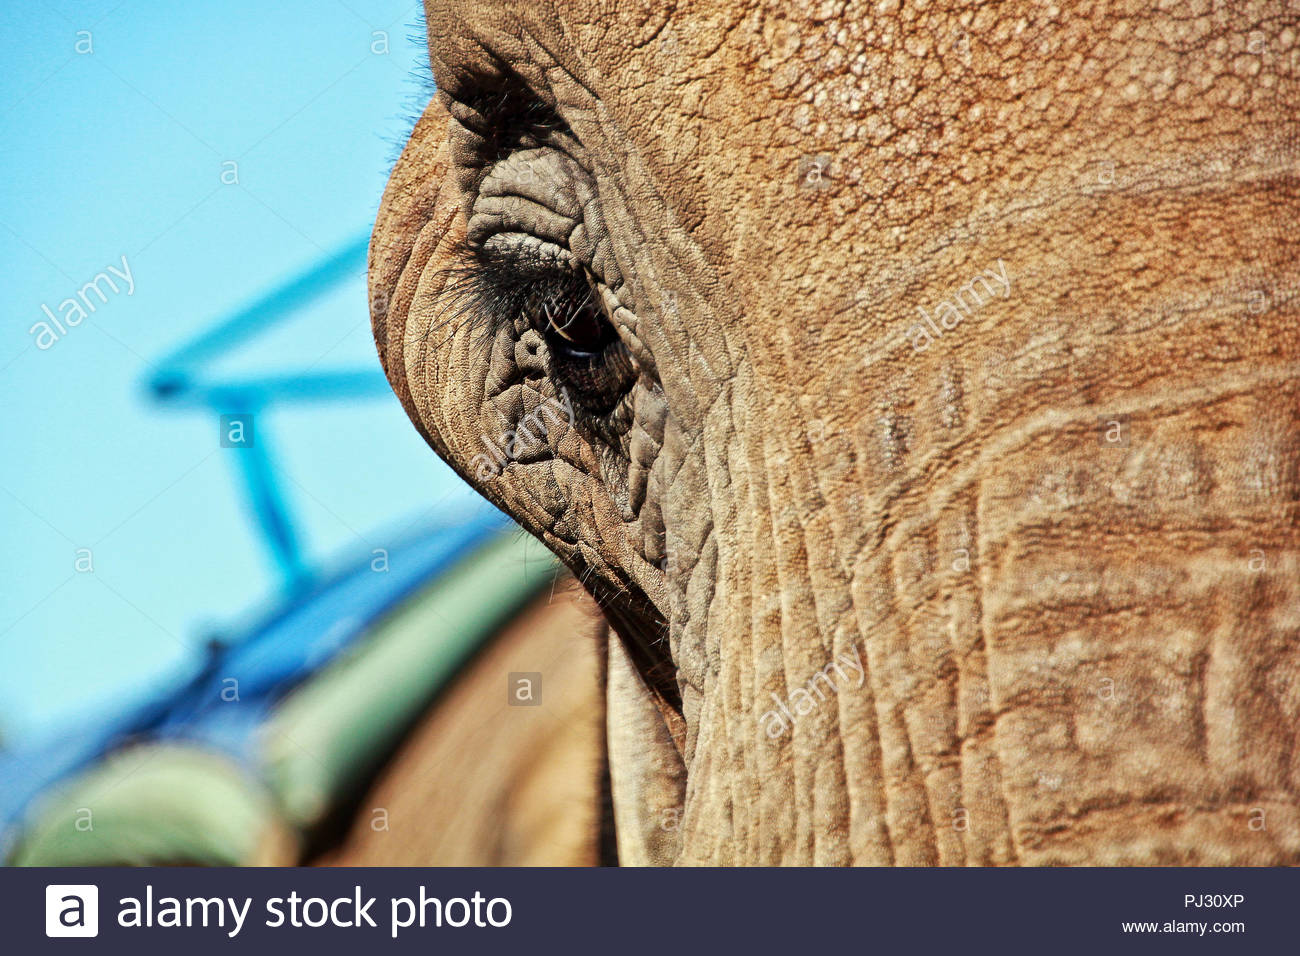 Cropped portrait of an elephant - Stock Image